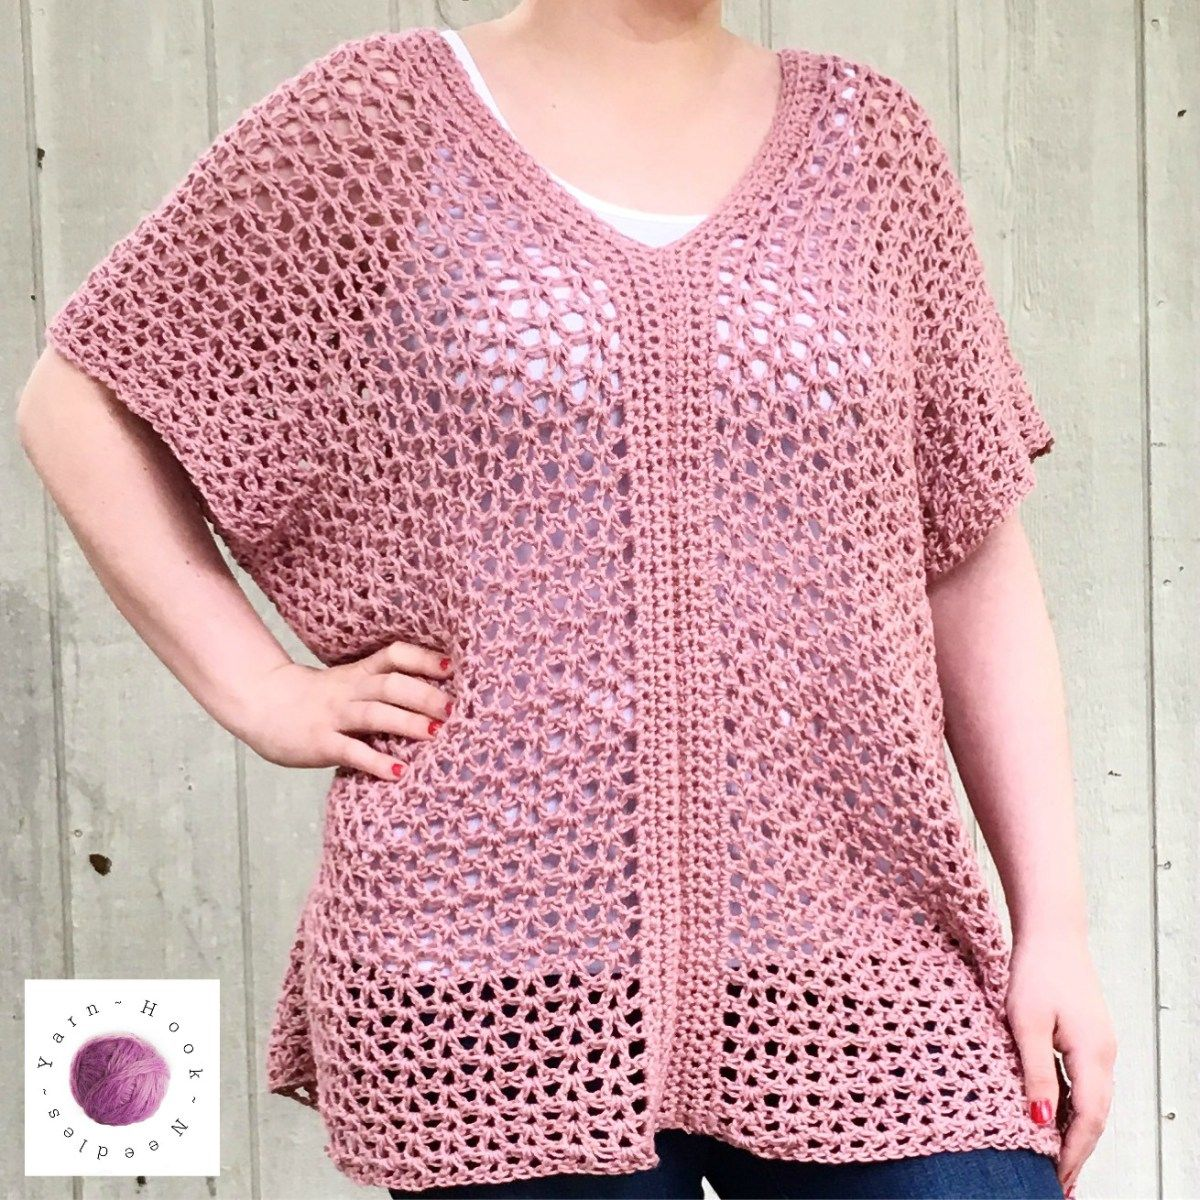 Learn to make this easy cotton crochet top in just a few hours free pattern learn to make this easy cotton crochet top bankloansurffo Image collections